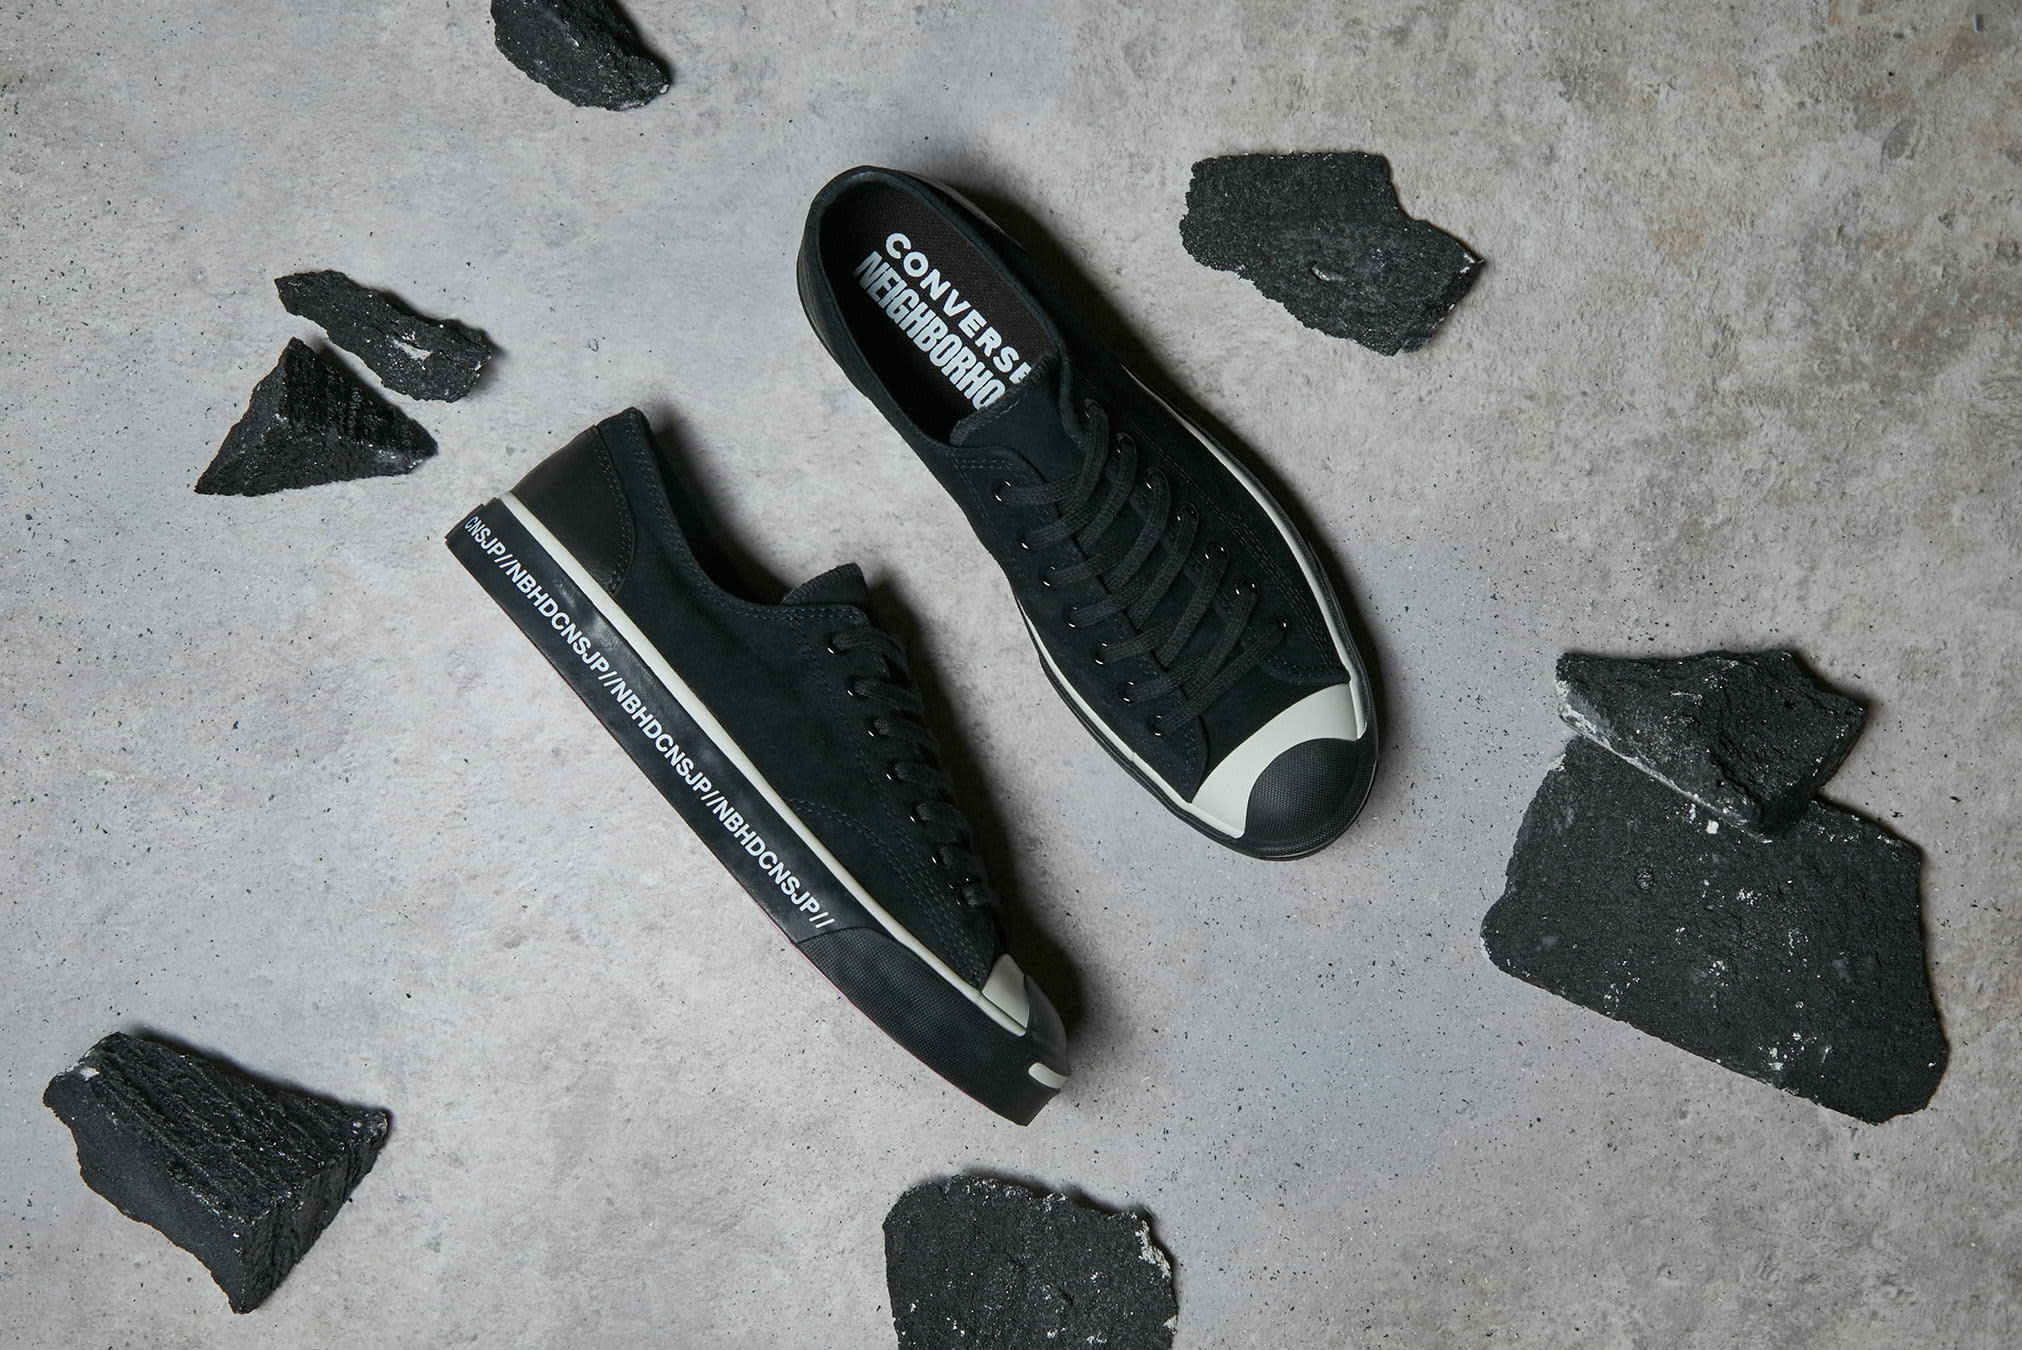 End Clothing has taken the sensibilities of Converse's